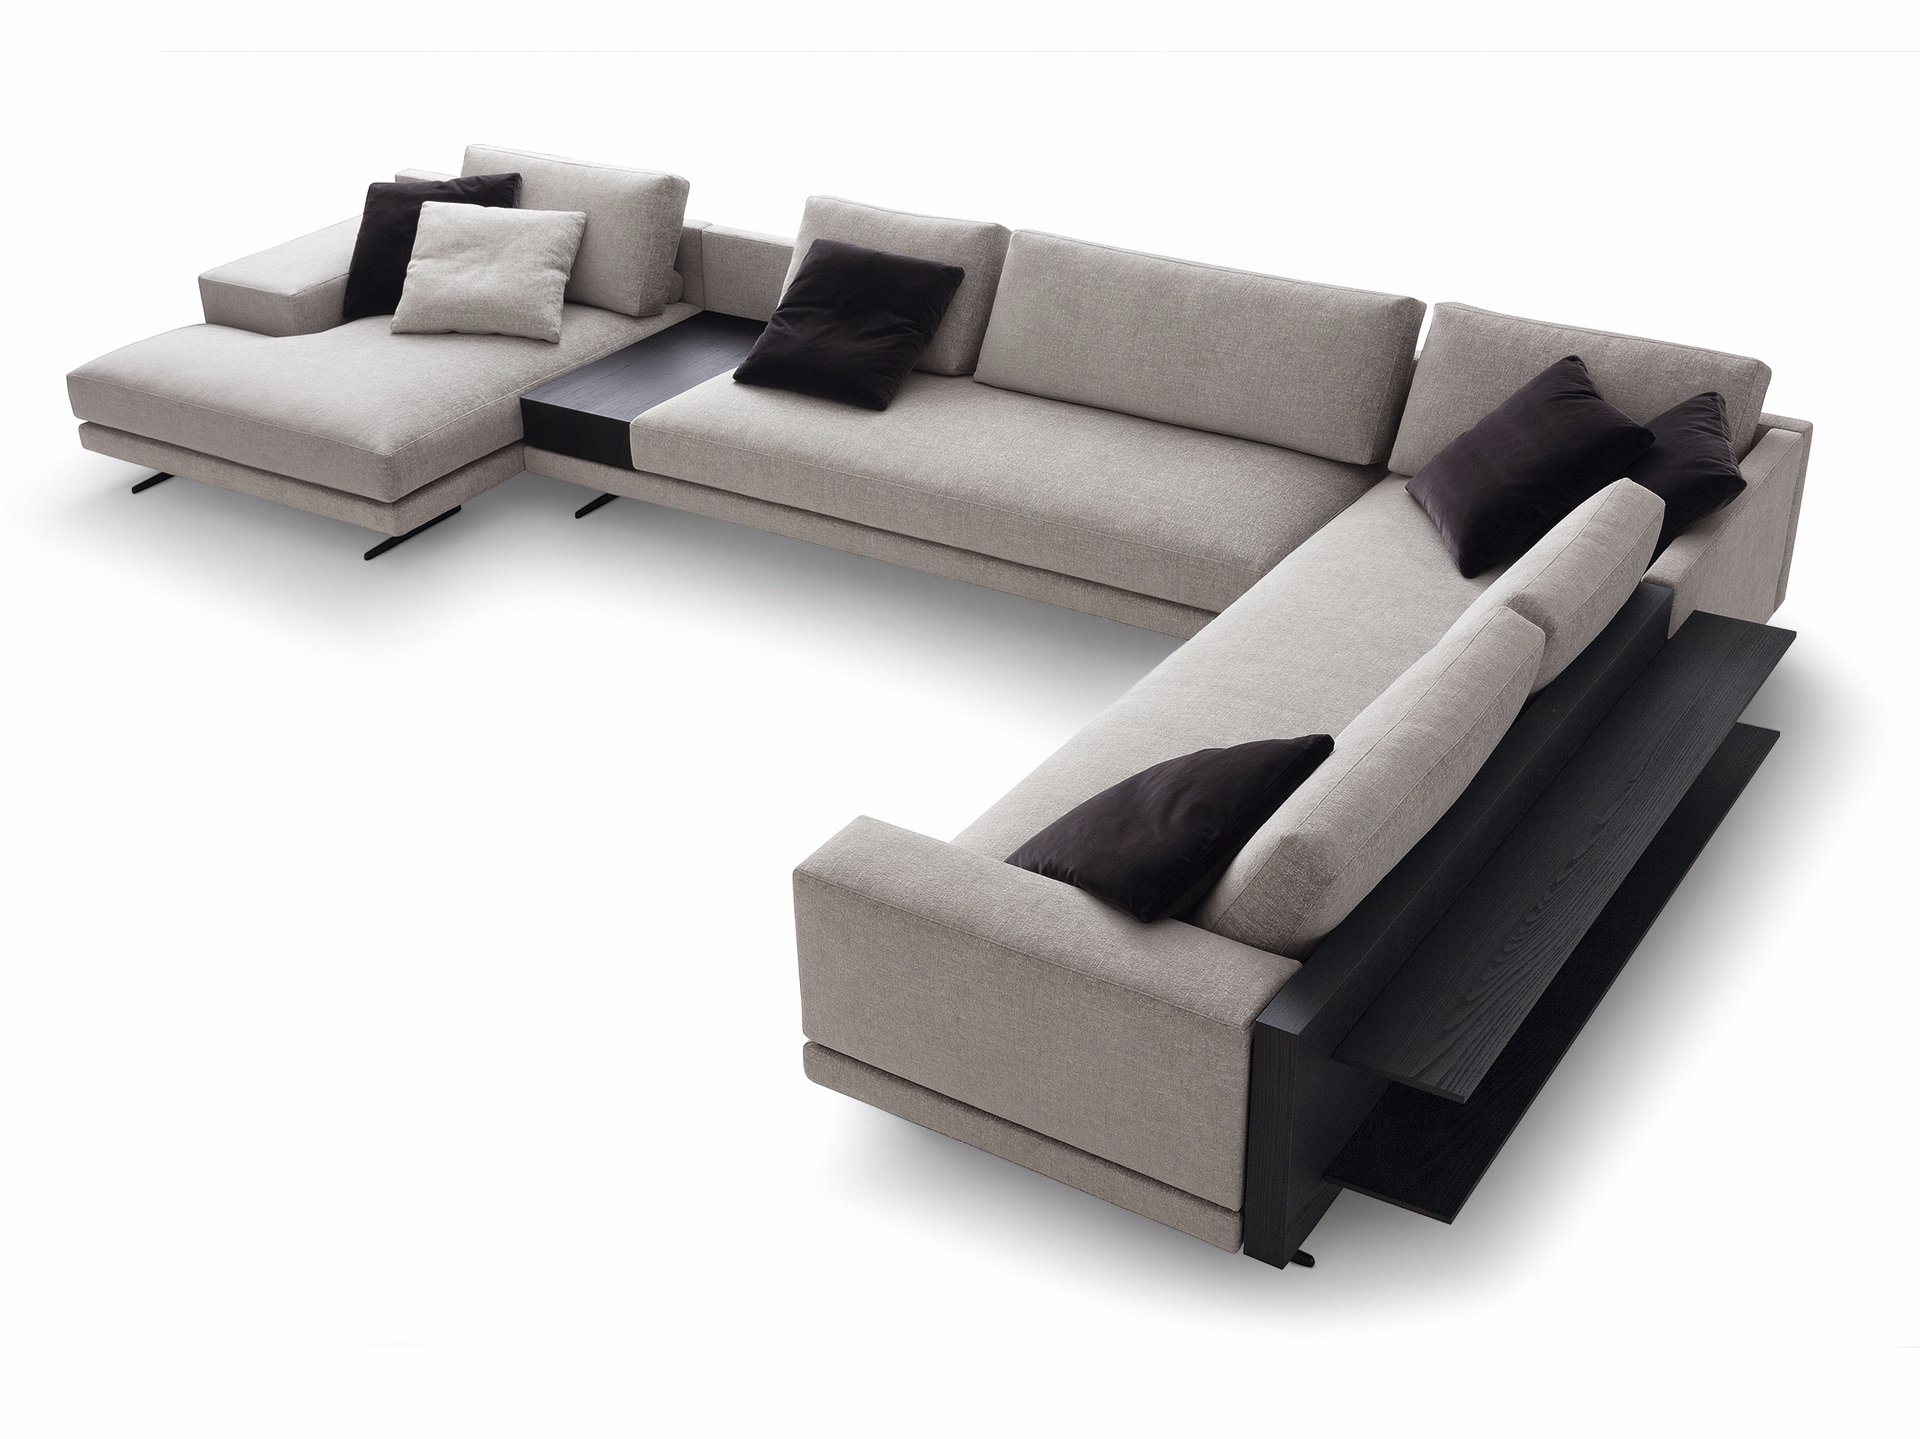 Mondrian corner sofa mondrian collection by poliform - Chaise longue modernos ...